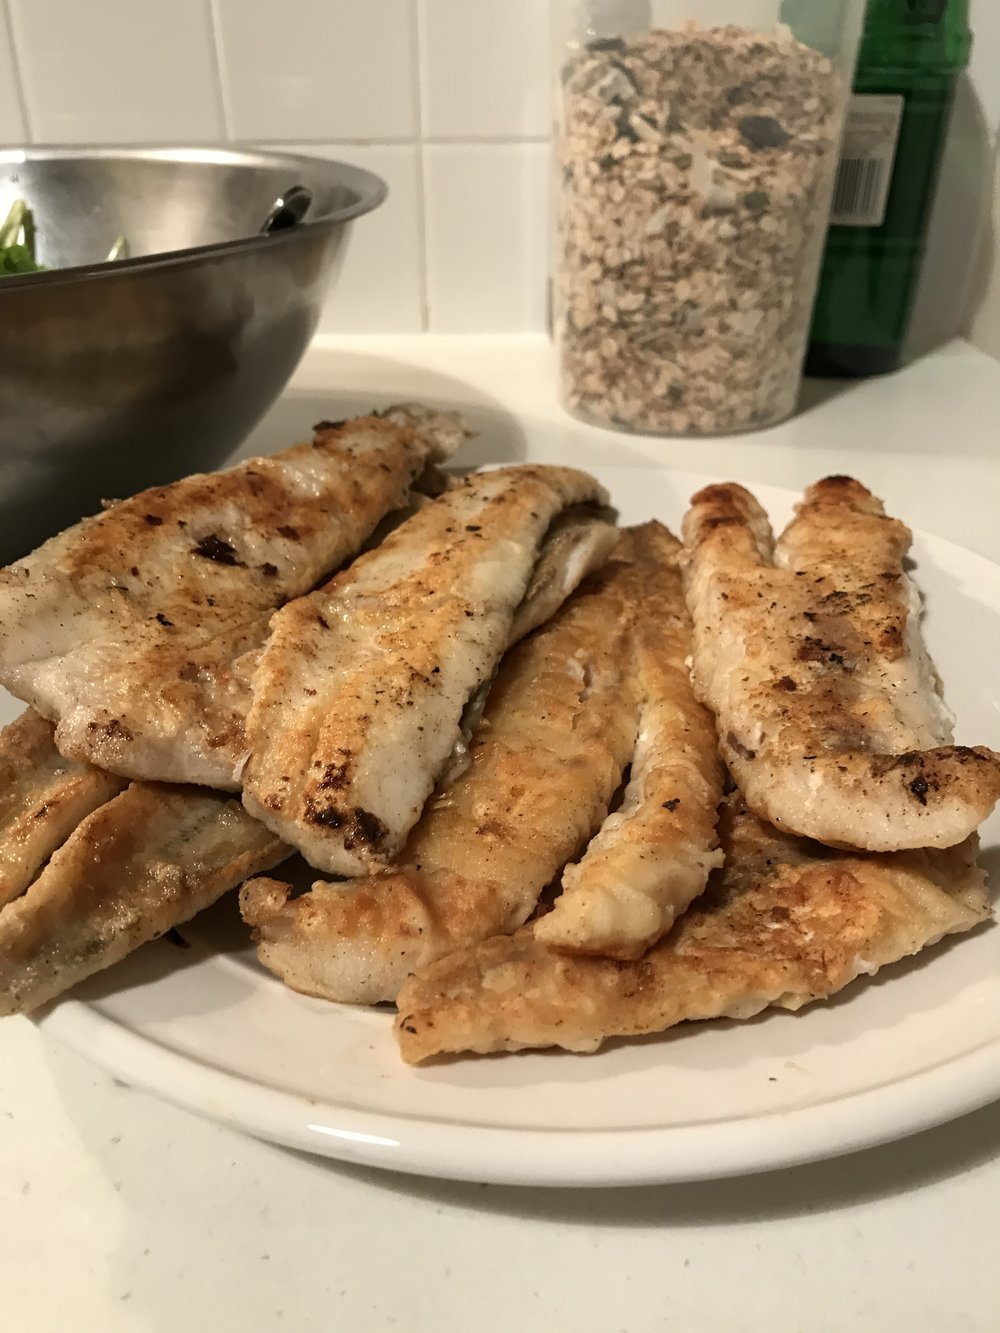 King George Whiting and Flathead from the Spencer Gulf  (B A Fisheries, Stansbury)